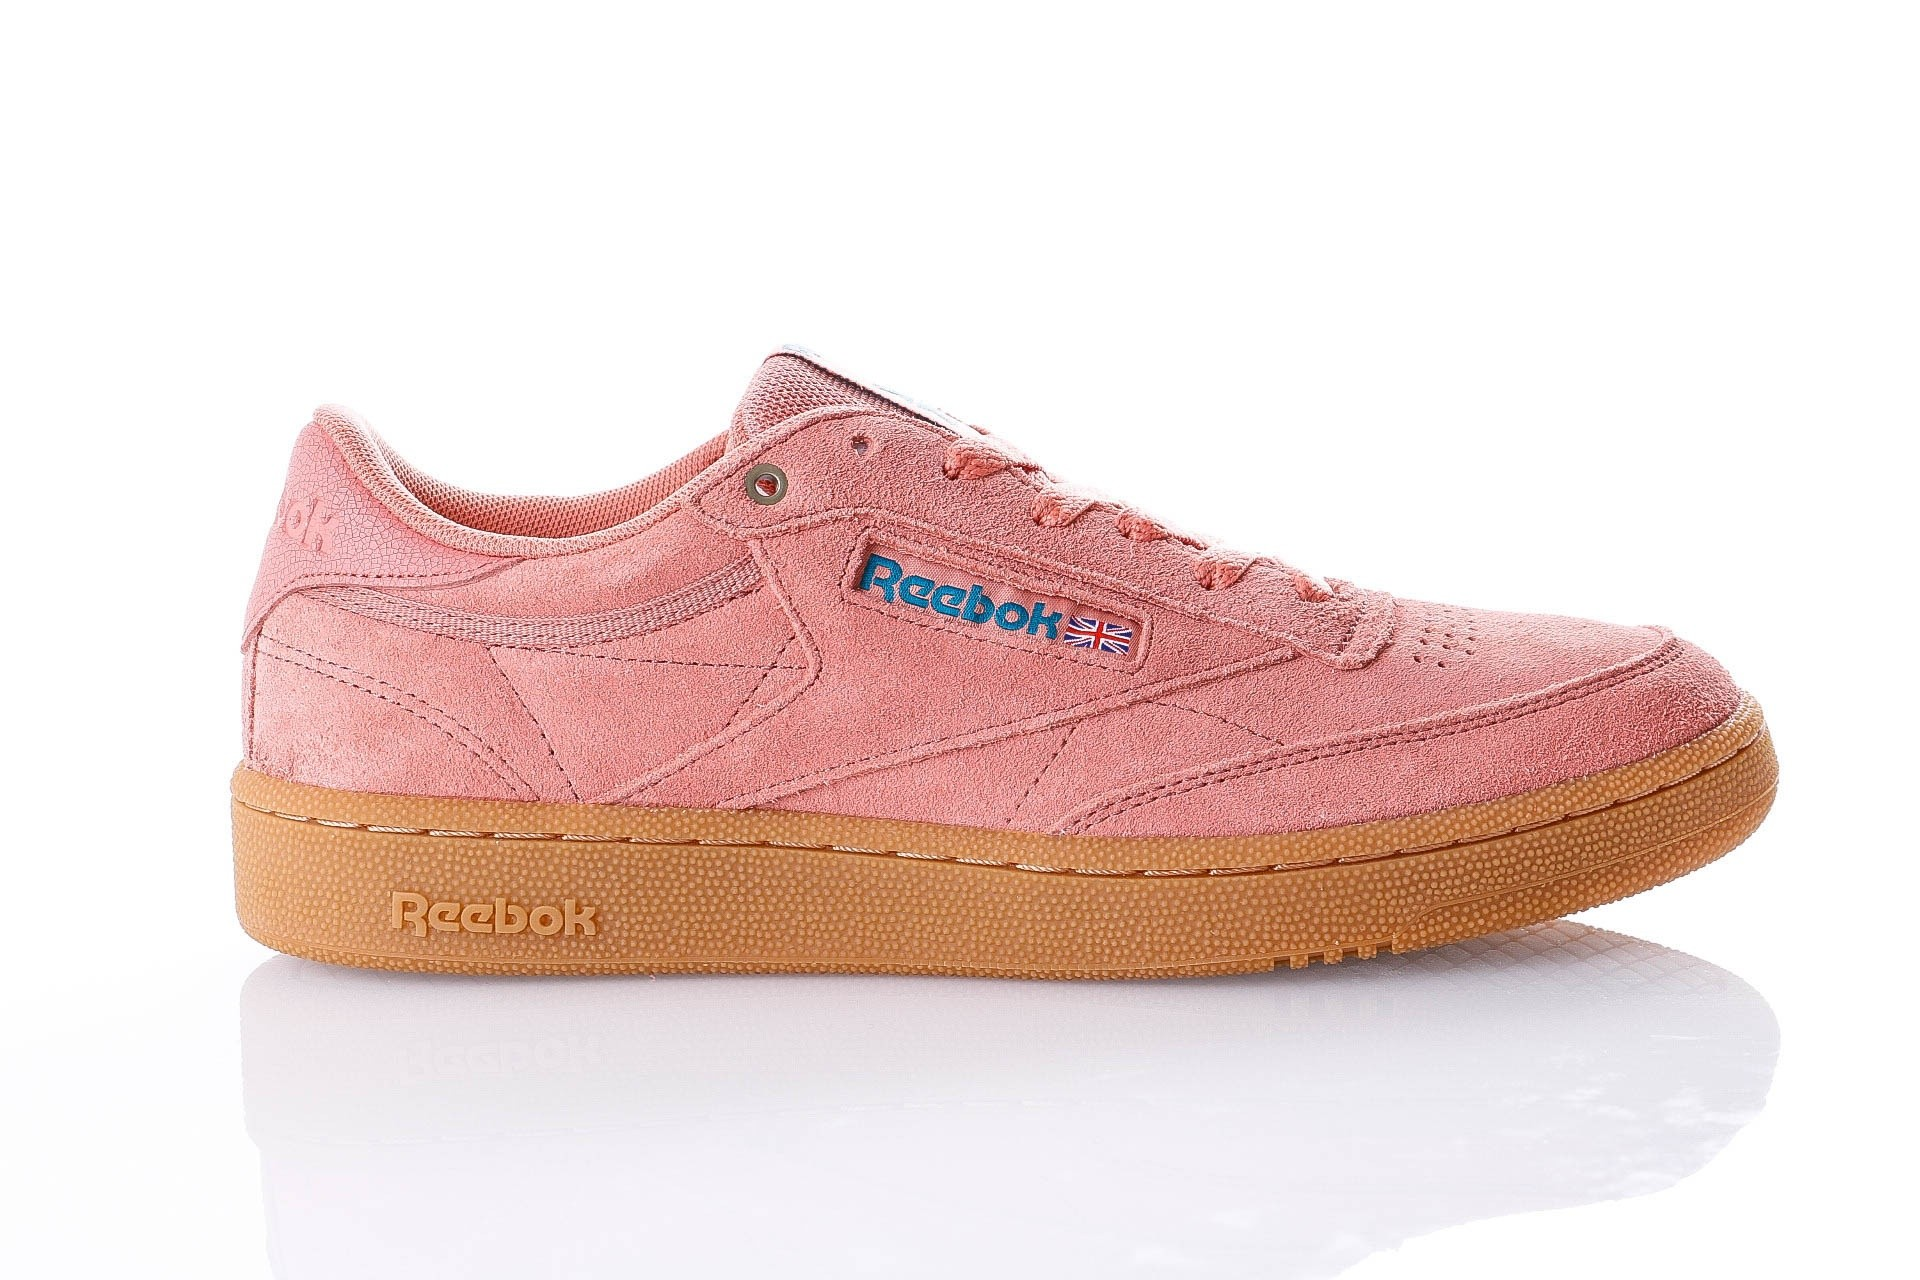 Foto van Reebok CLUB C 85 MU CN3865 Sneakers MC-DIRTY APRICOT/TEAL/GUM